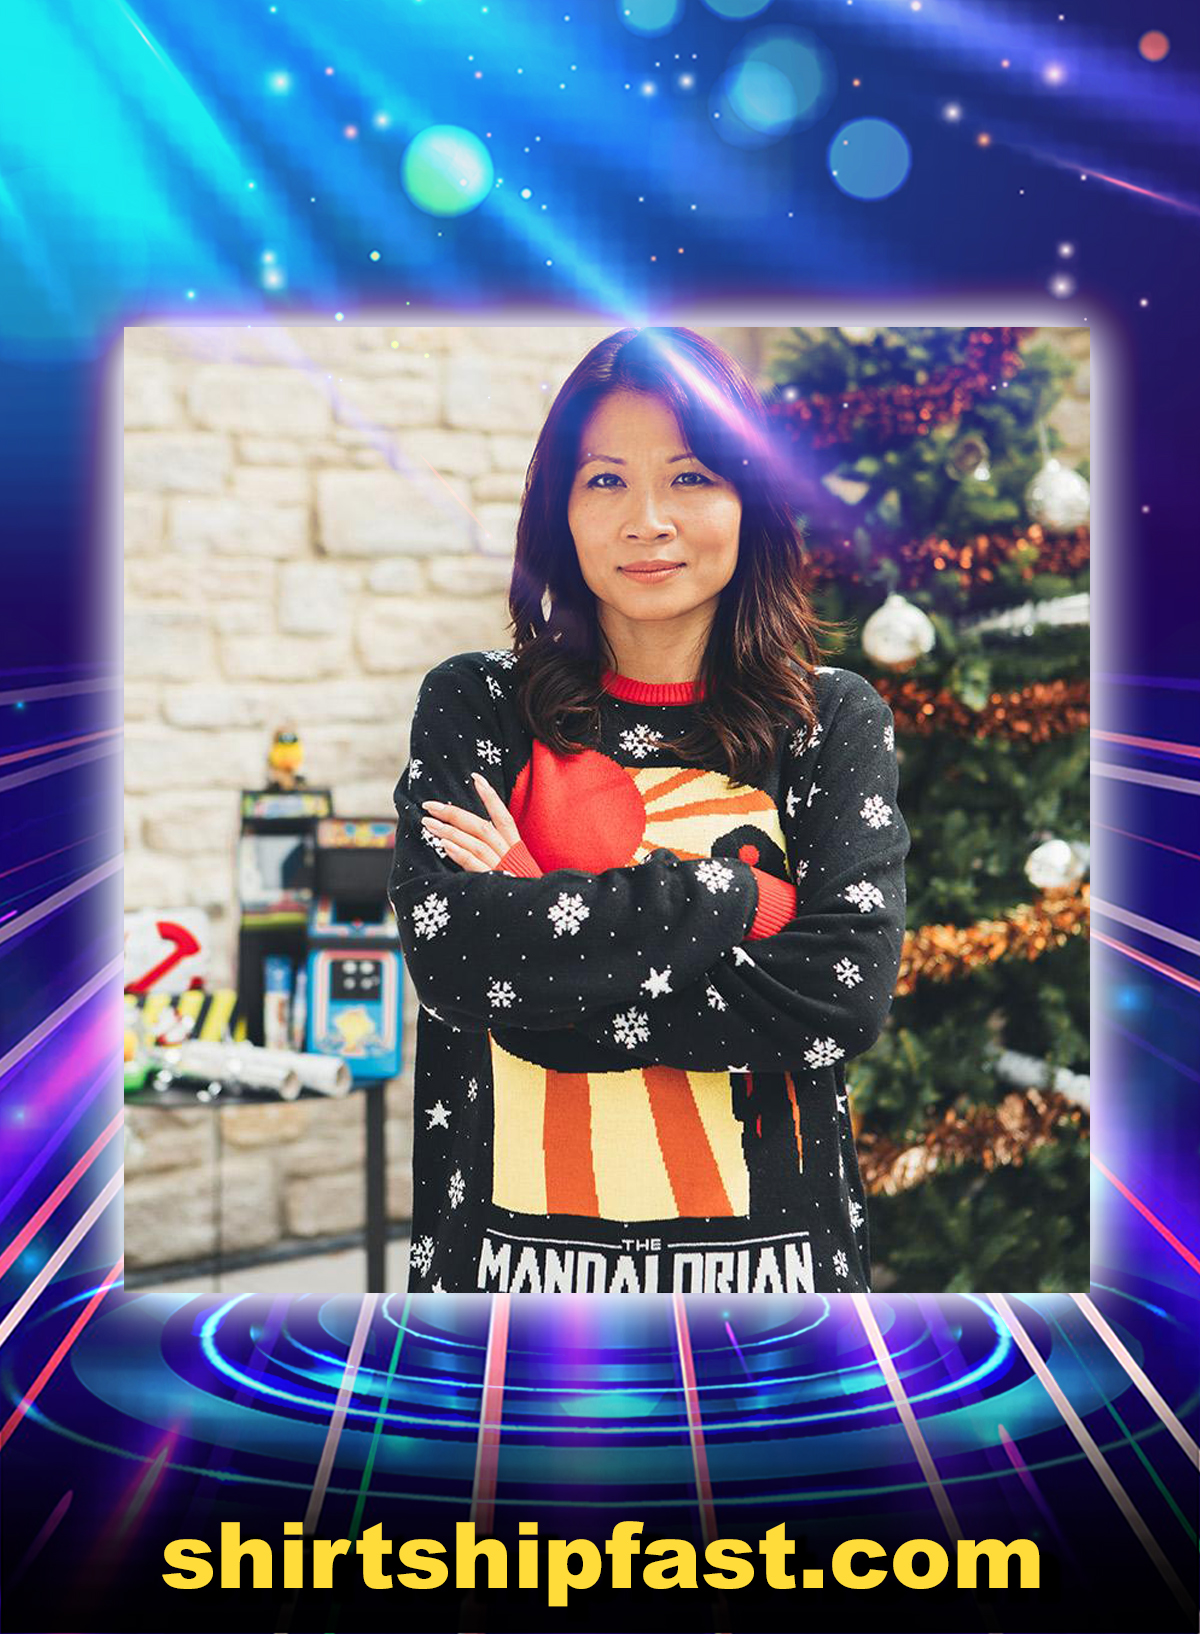 Star wars the mandalorian ugly christmas jumper and sweater - Picture 1